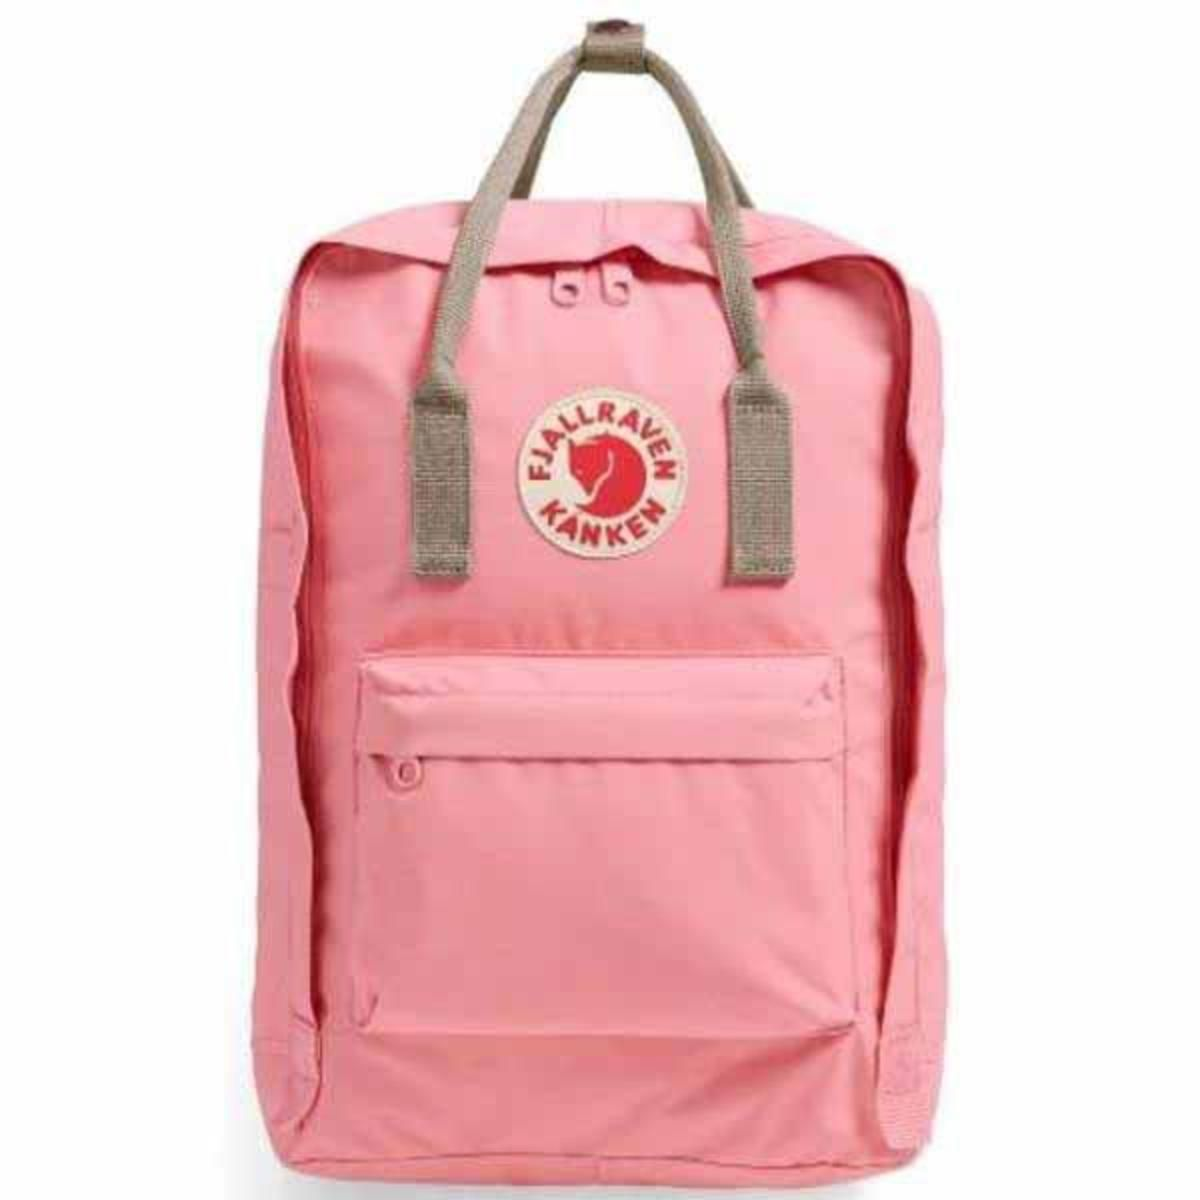 3178e705c128e FjallRaven Kanken Backpack - Pink Fog - The Warming Store